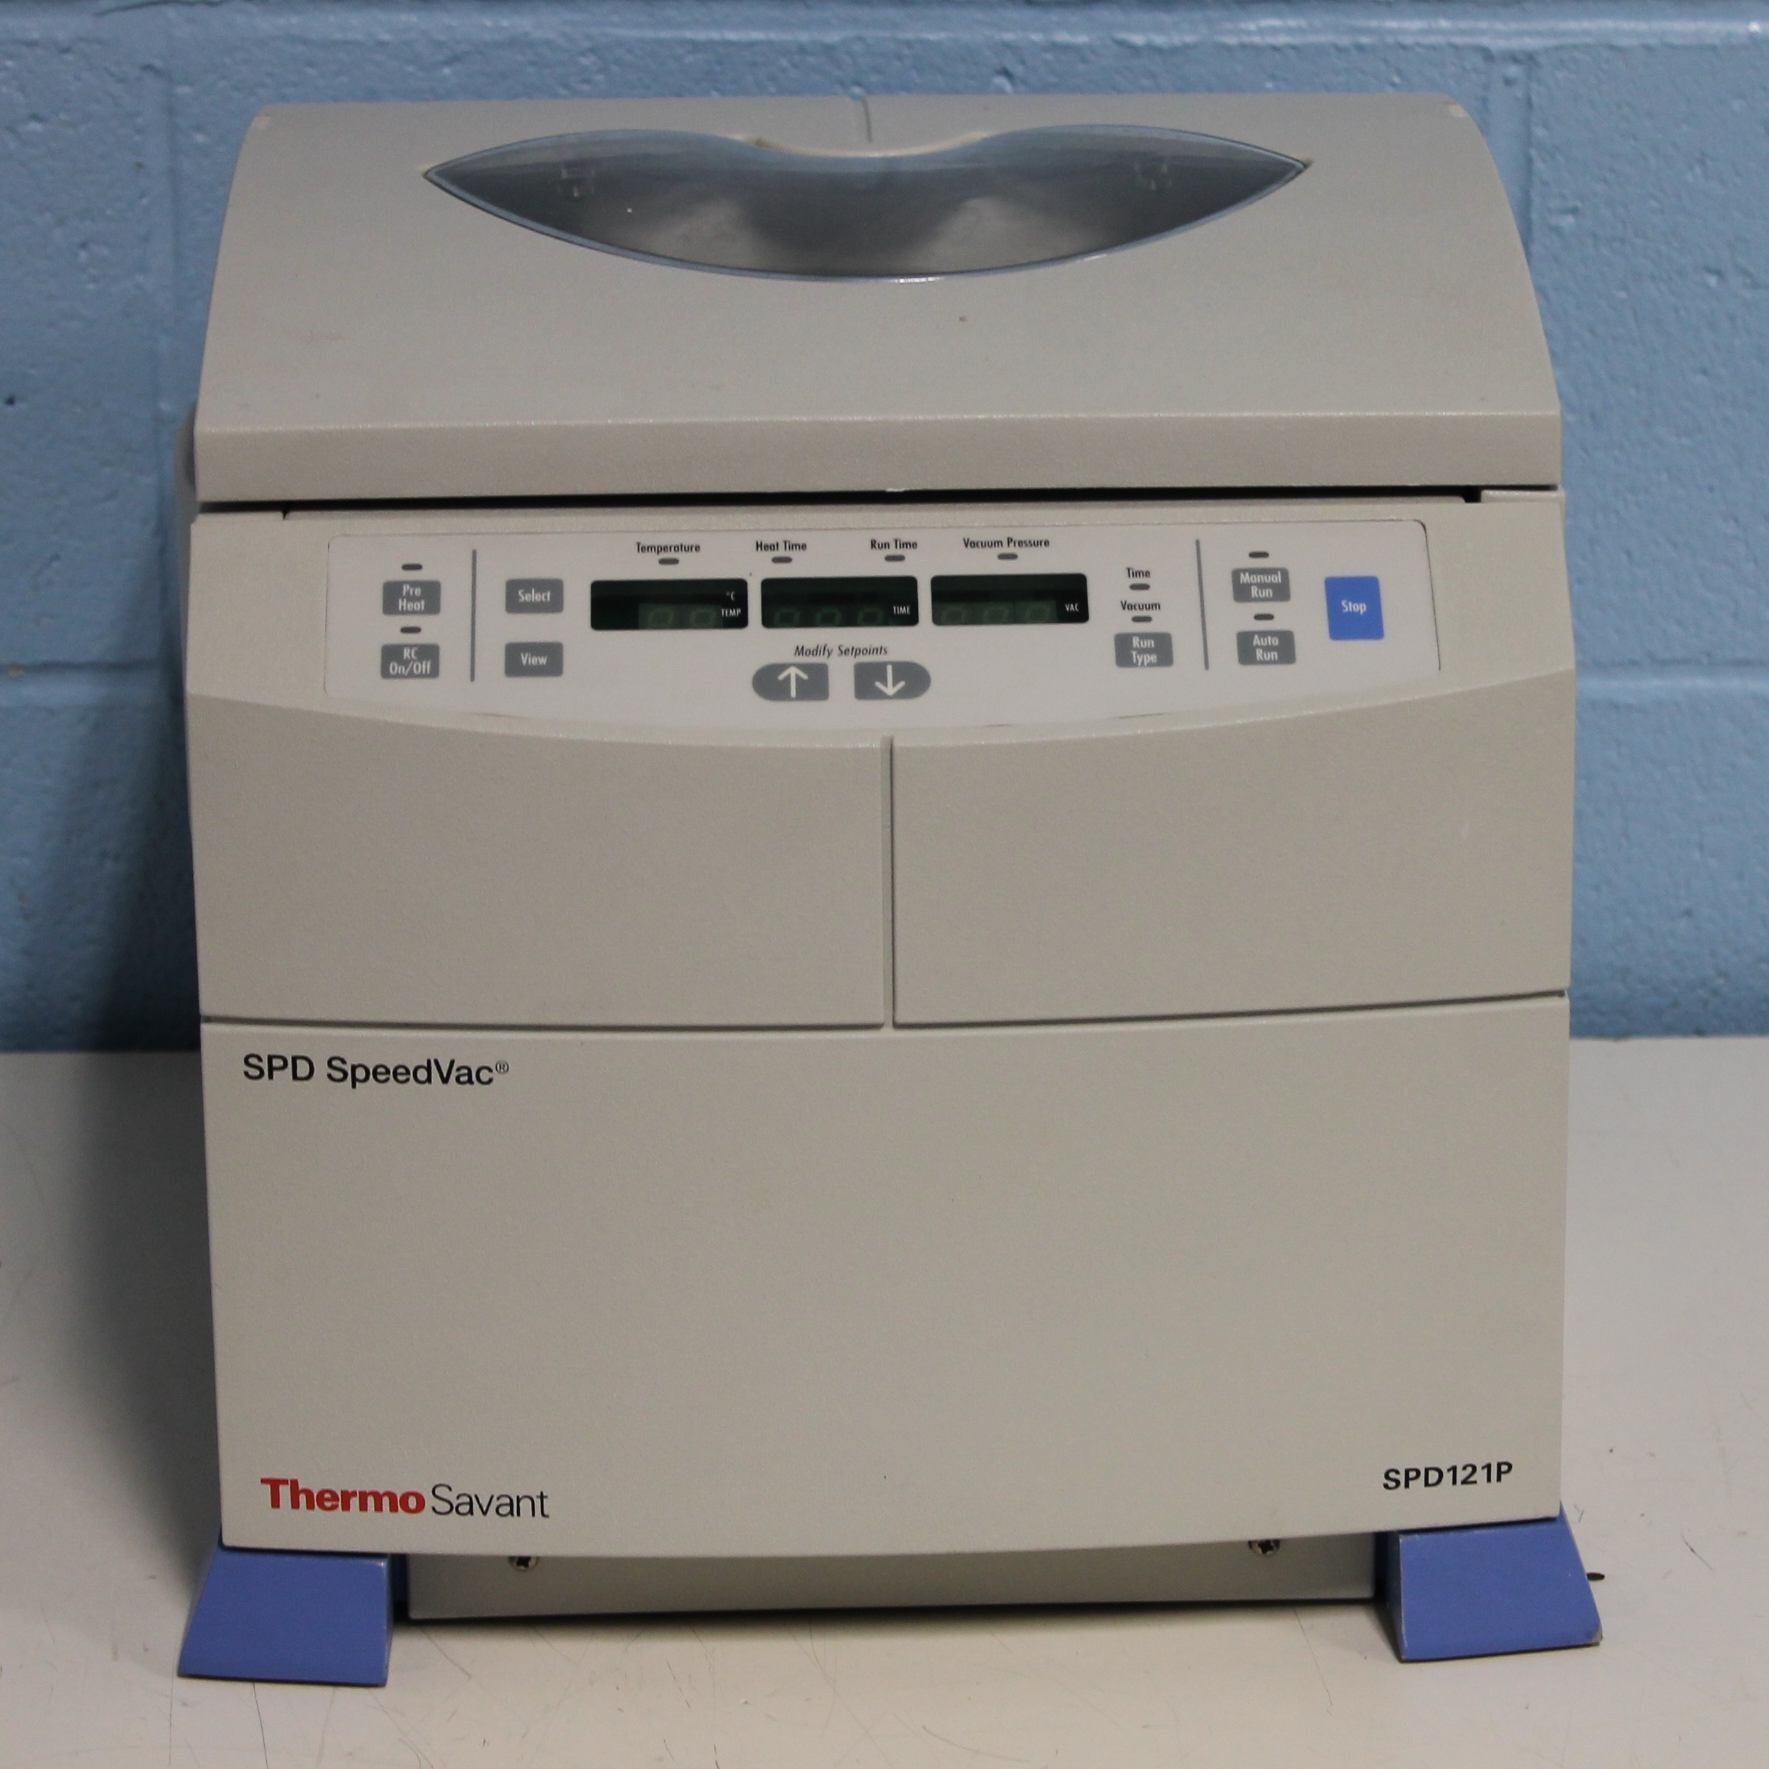 Thermo / Savant SPD121P SpeedVac Concentrator Image